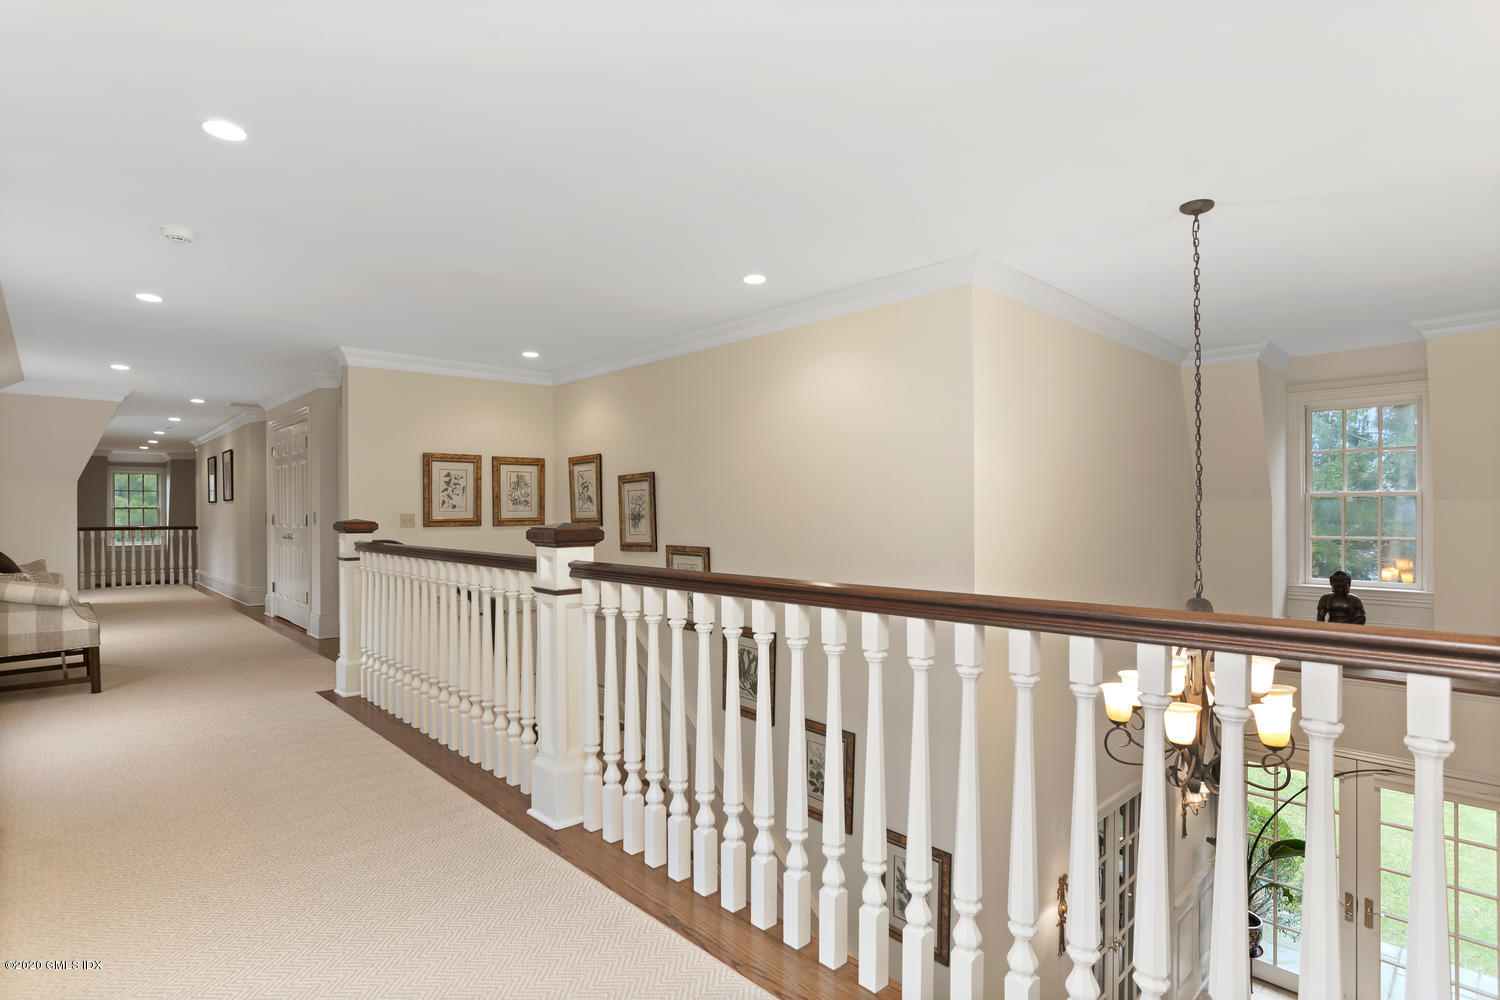 13 Chieftans Road,Greenwich,Connecticut 06831,4 Bedrooms Bedrooms,5 BathroomsBathrooms,Single family,Chieftans,108567